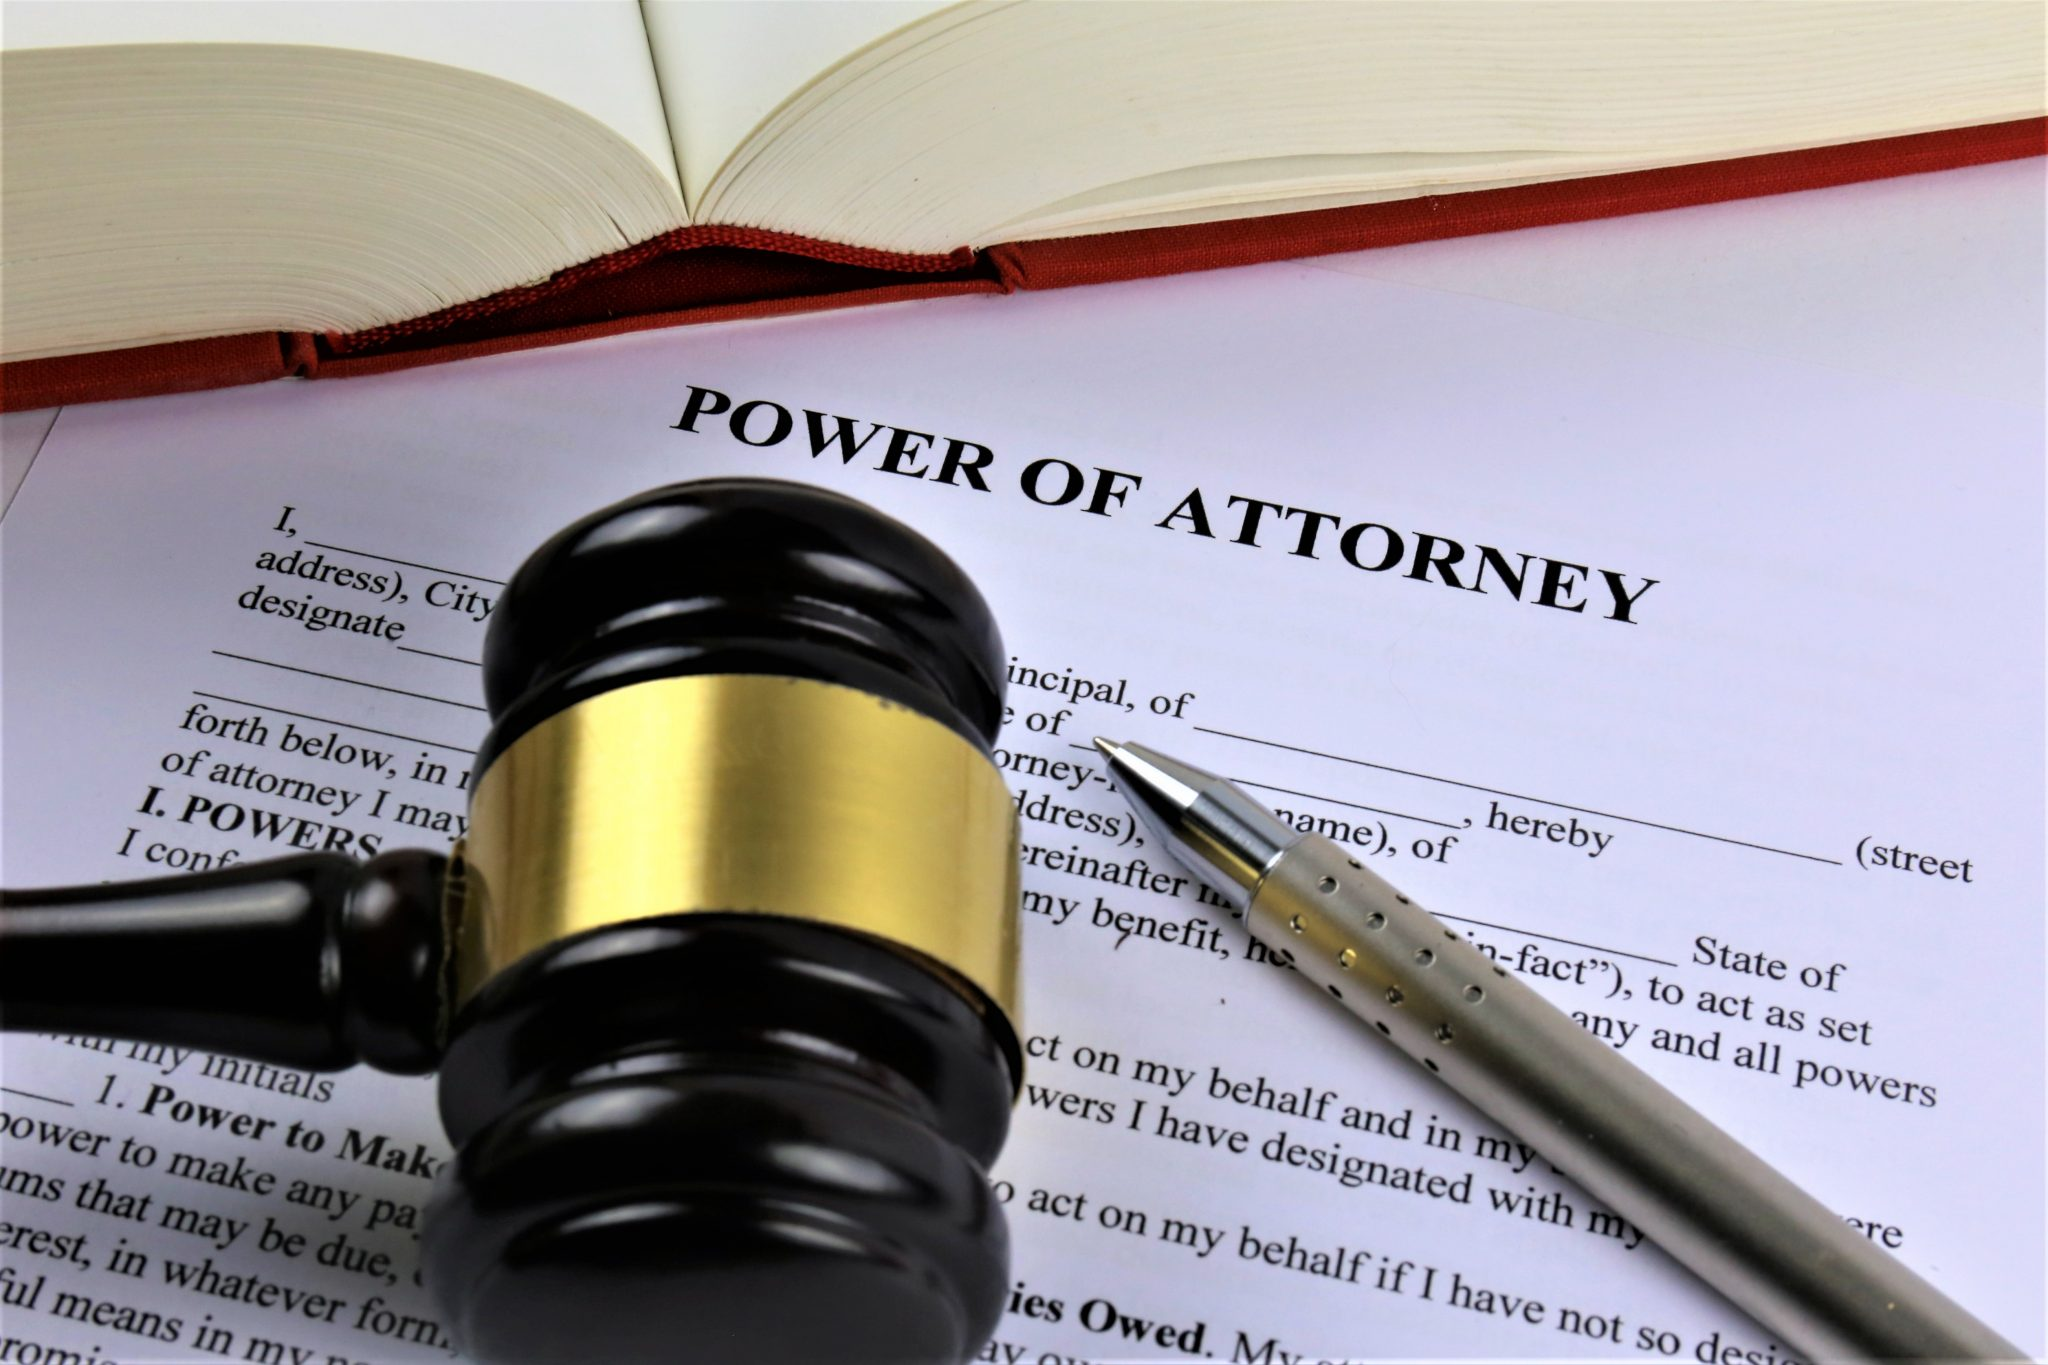 power of attorney form jamaica  Get the Facts – Power of Attorney - Jamaica Information Service